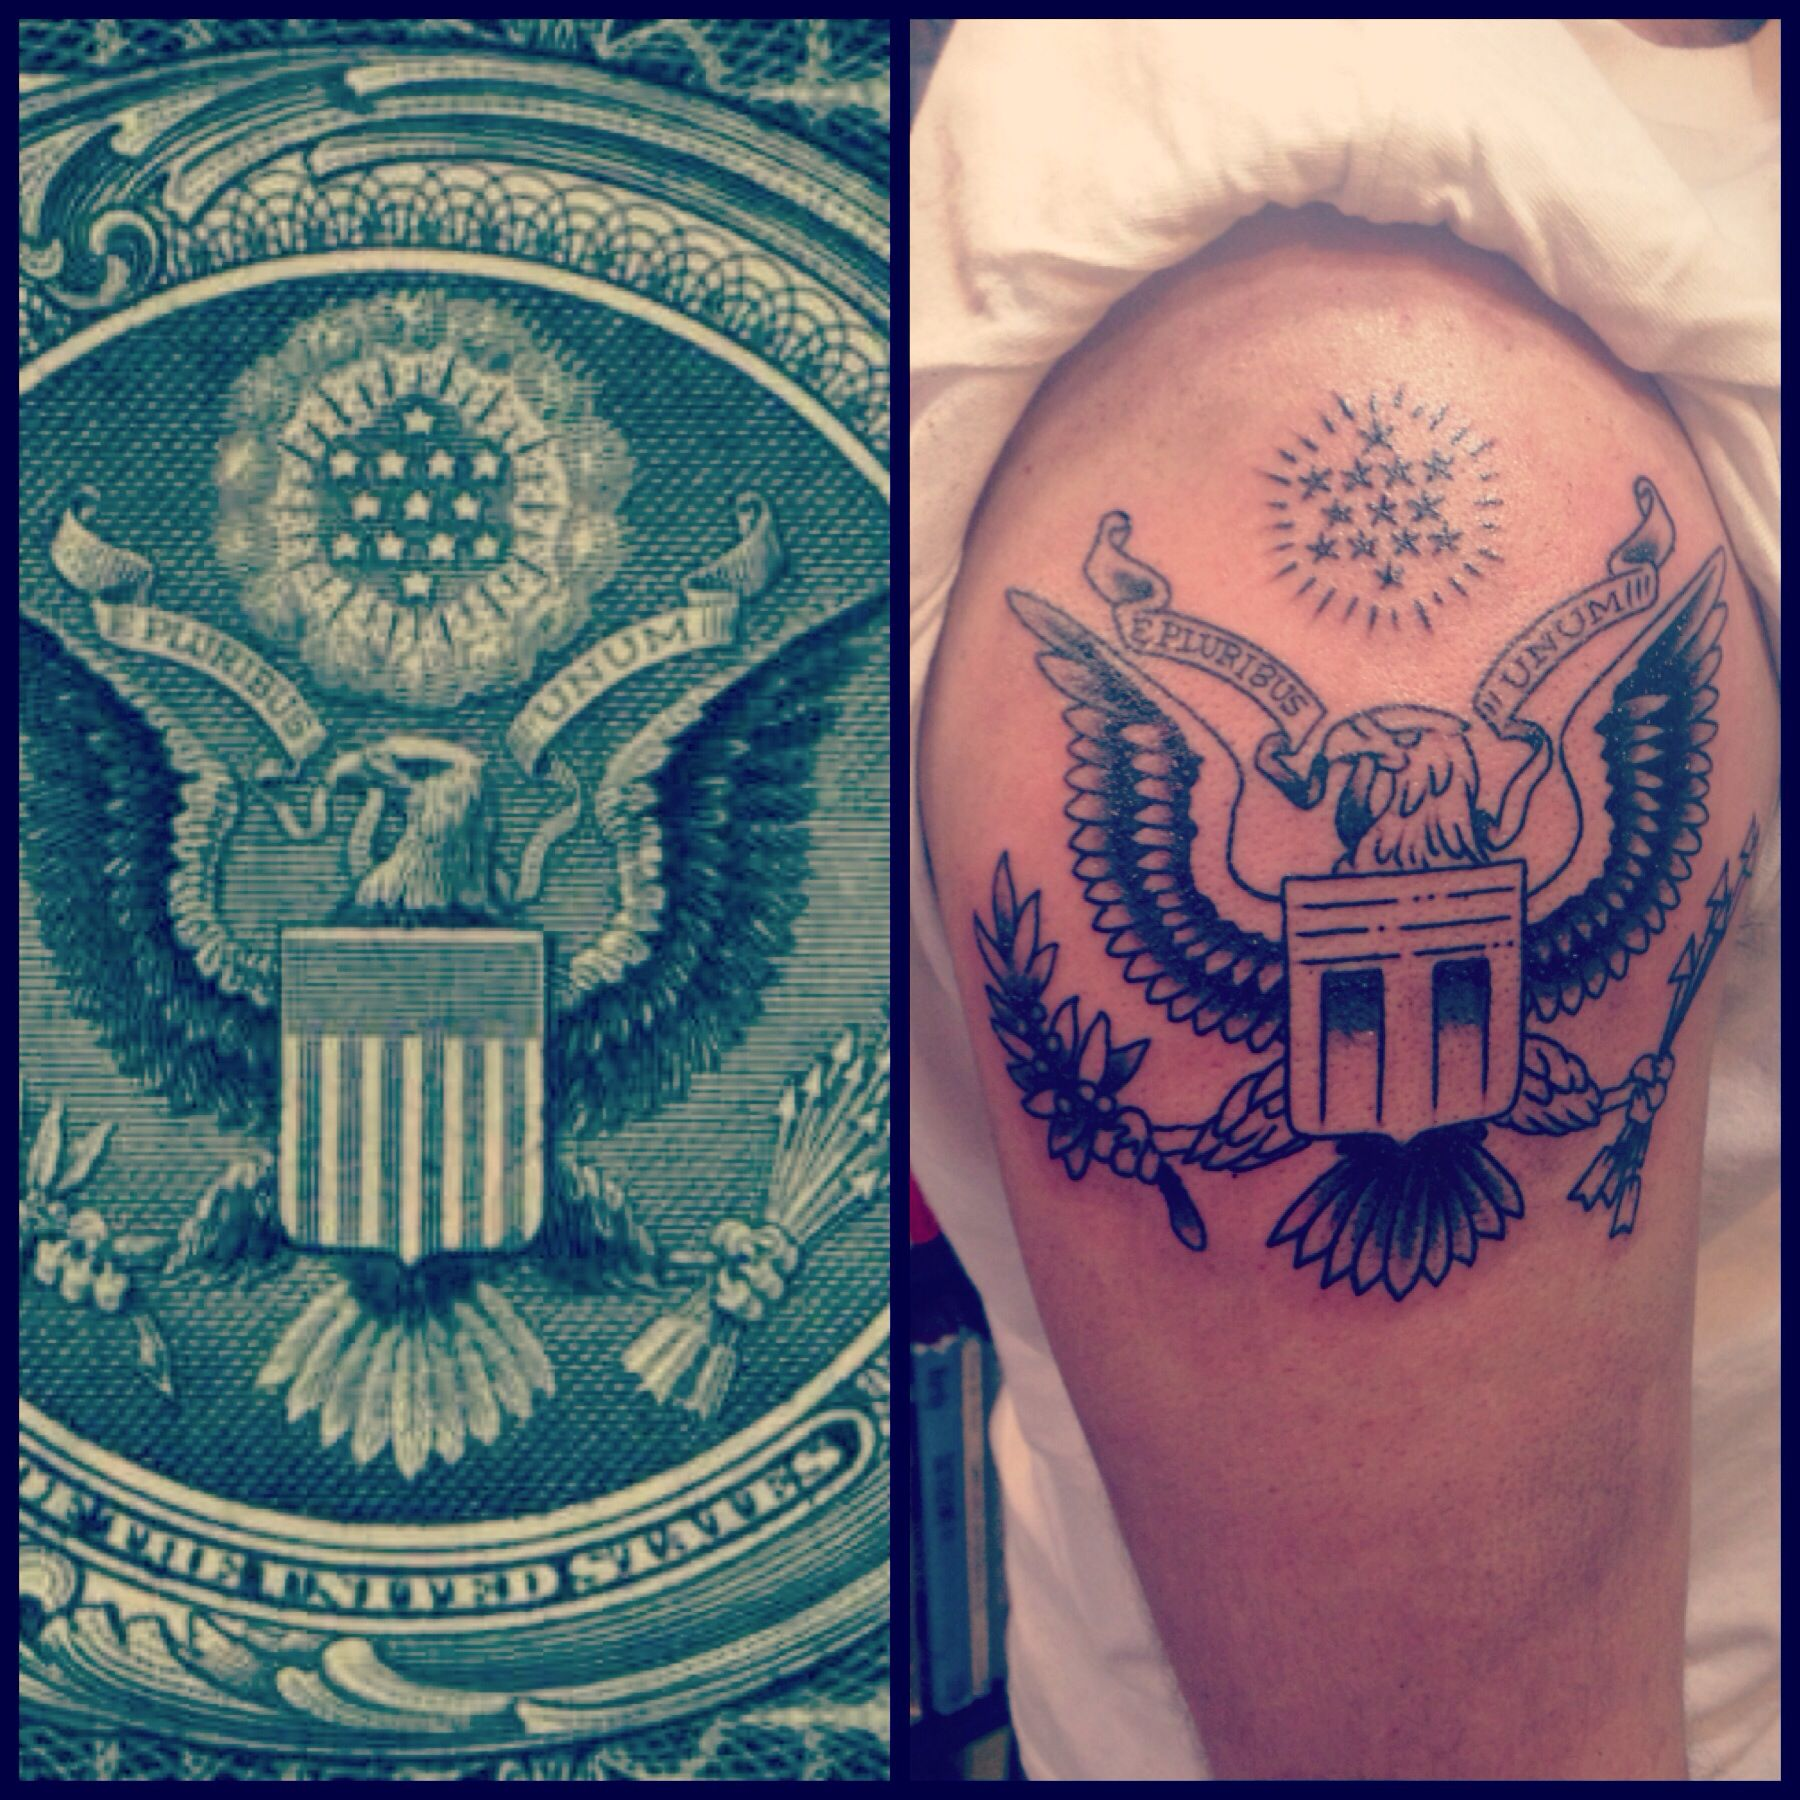 Inspiration to reality! Eagle tattoo from the presidential seal ...